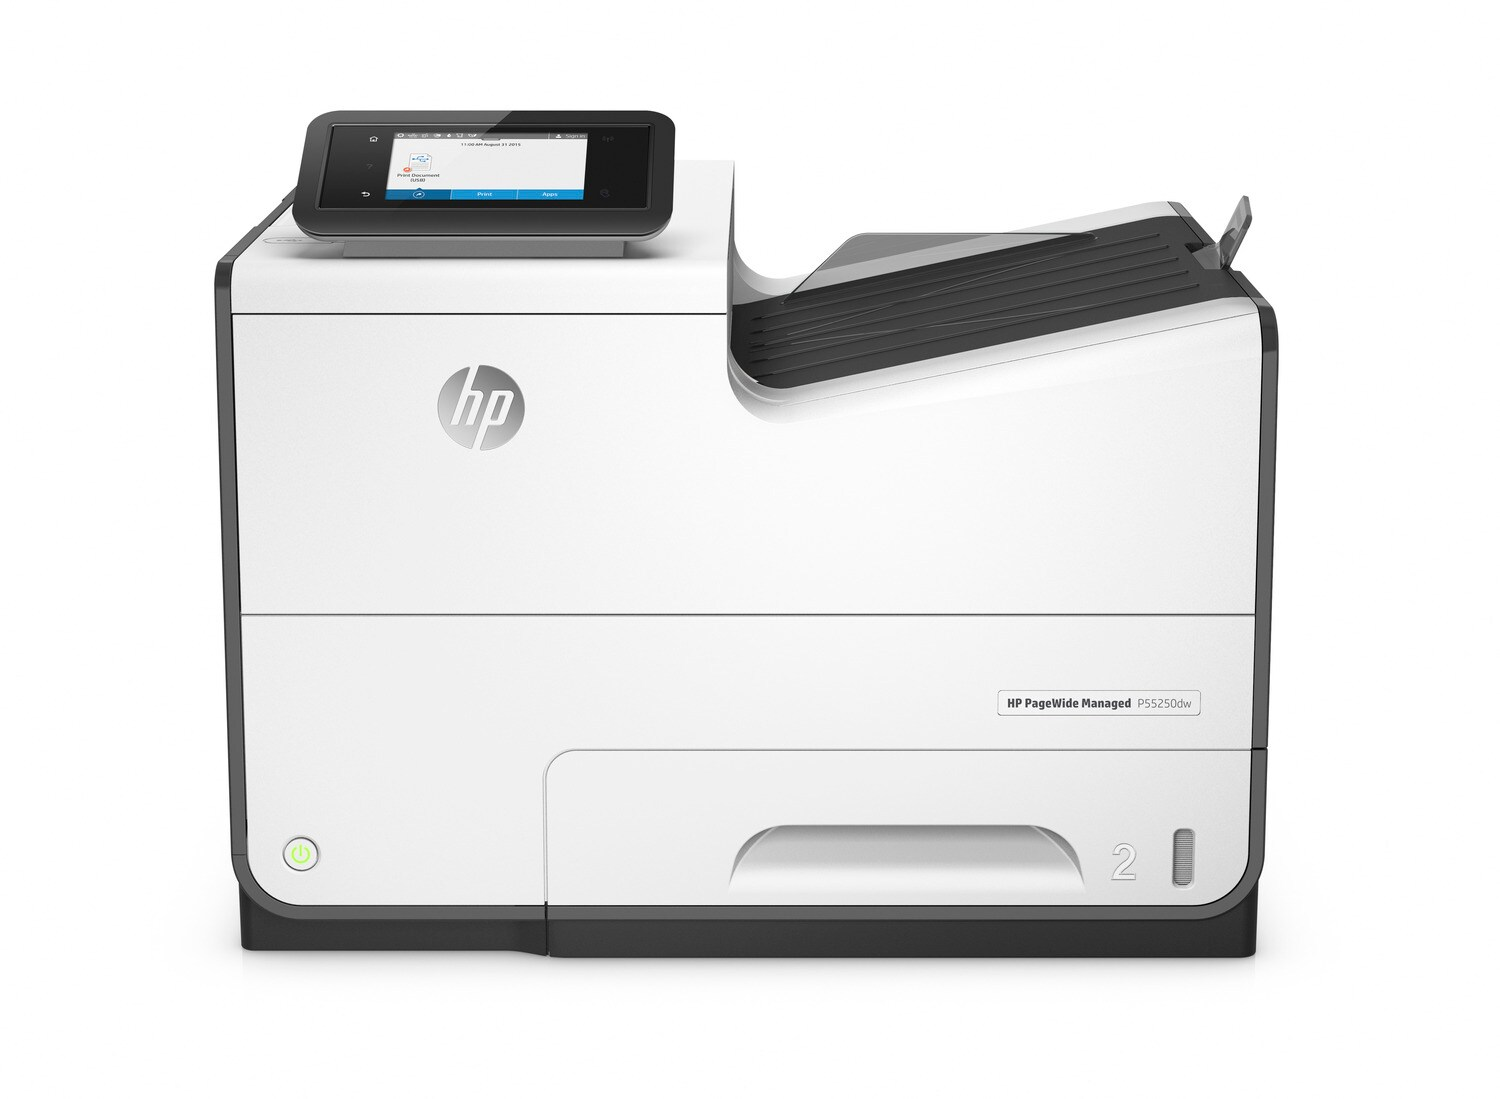 Noleggio Stampante HP PageWide Managed P55250dw - Lyreco print services